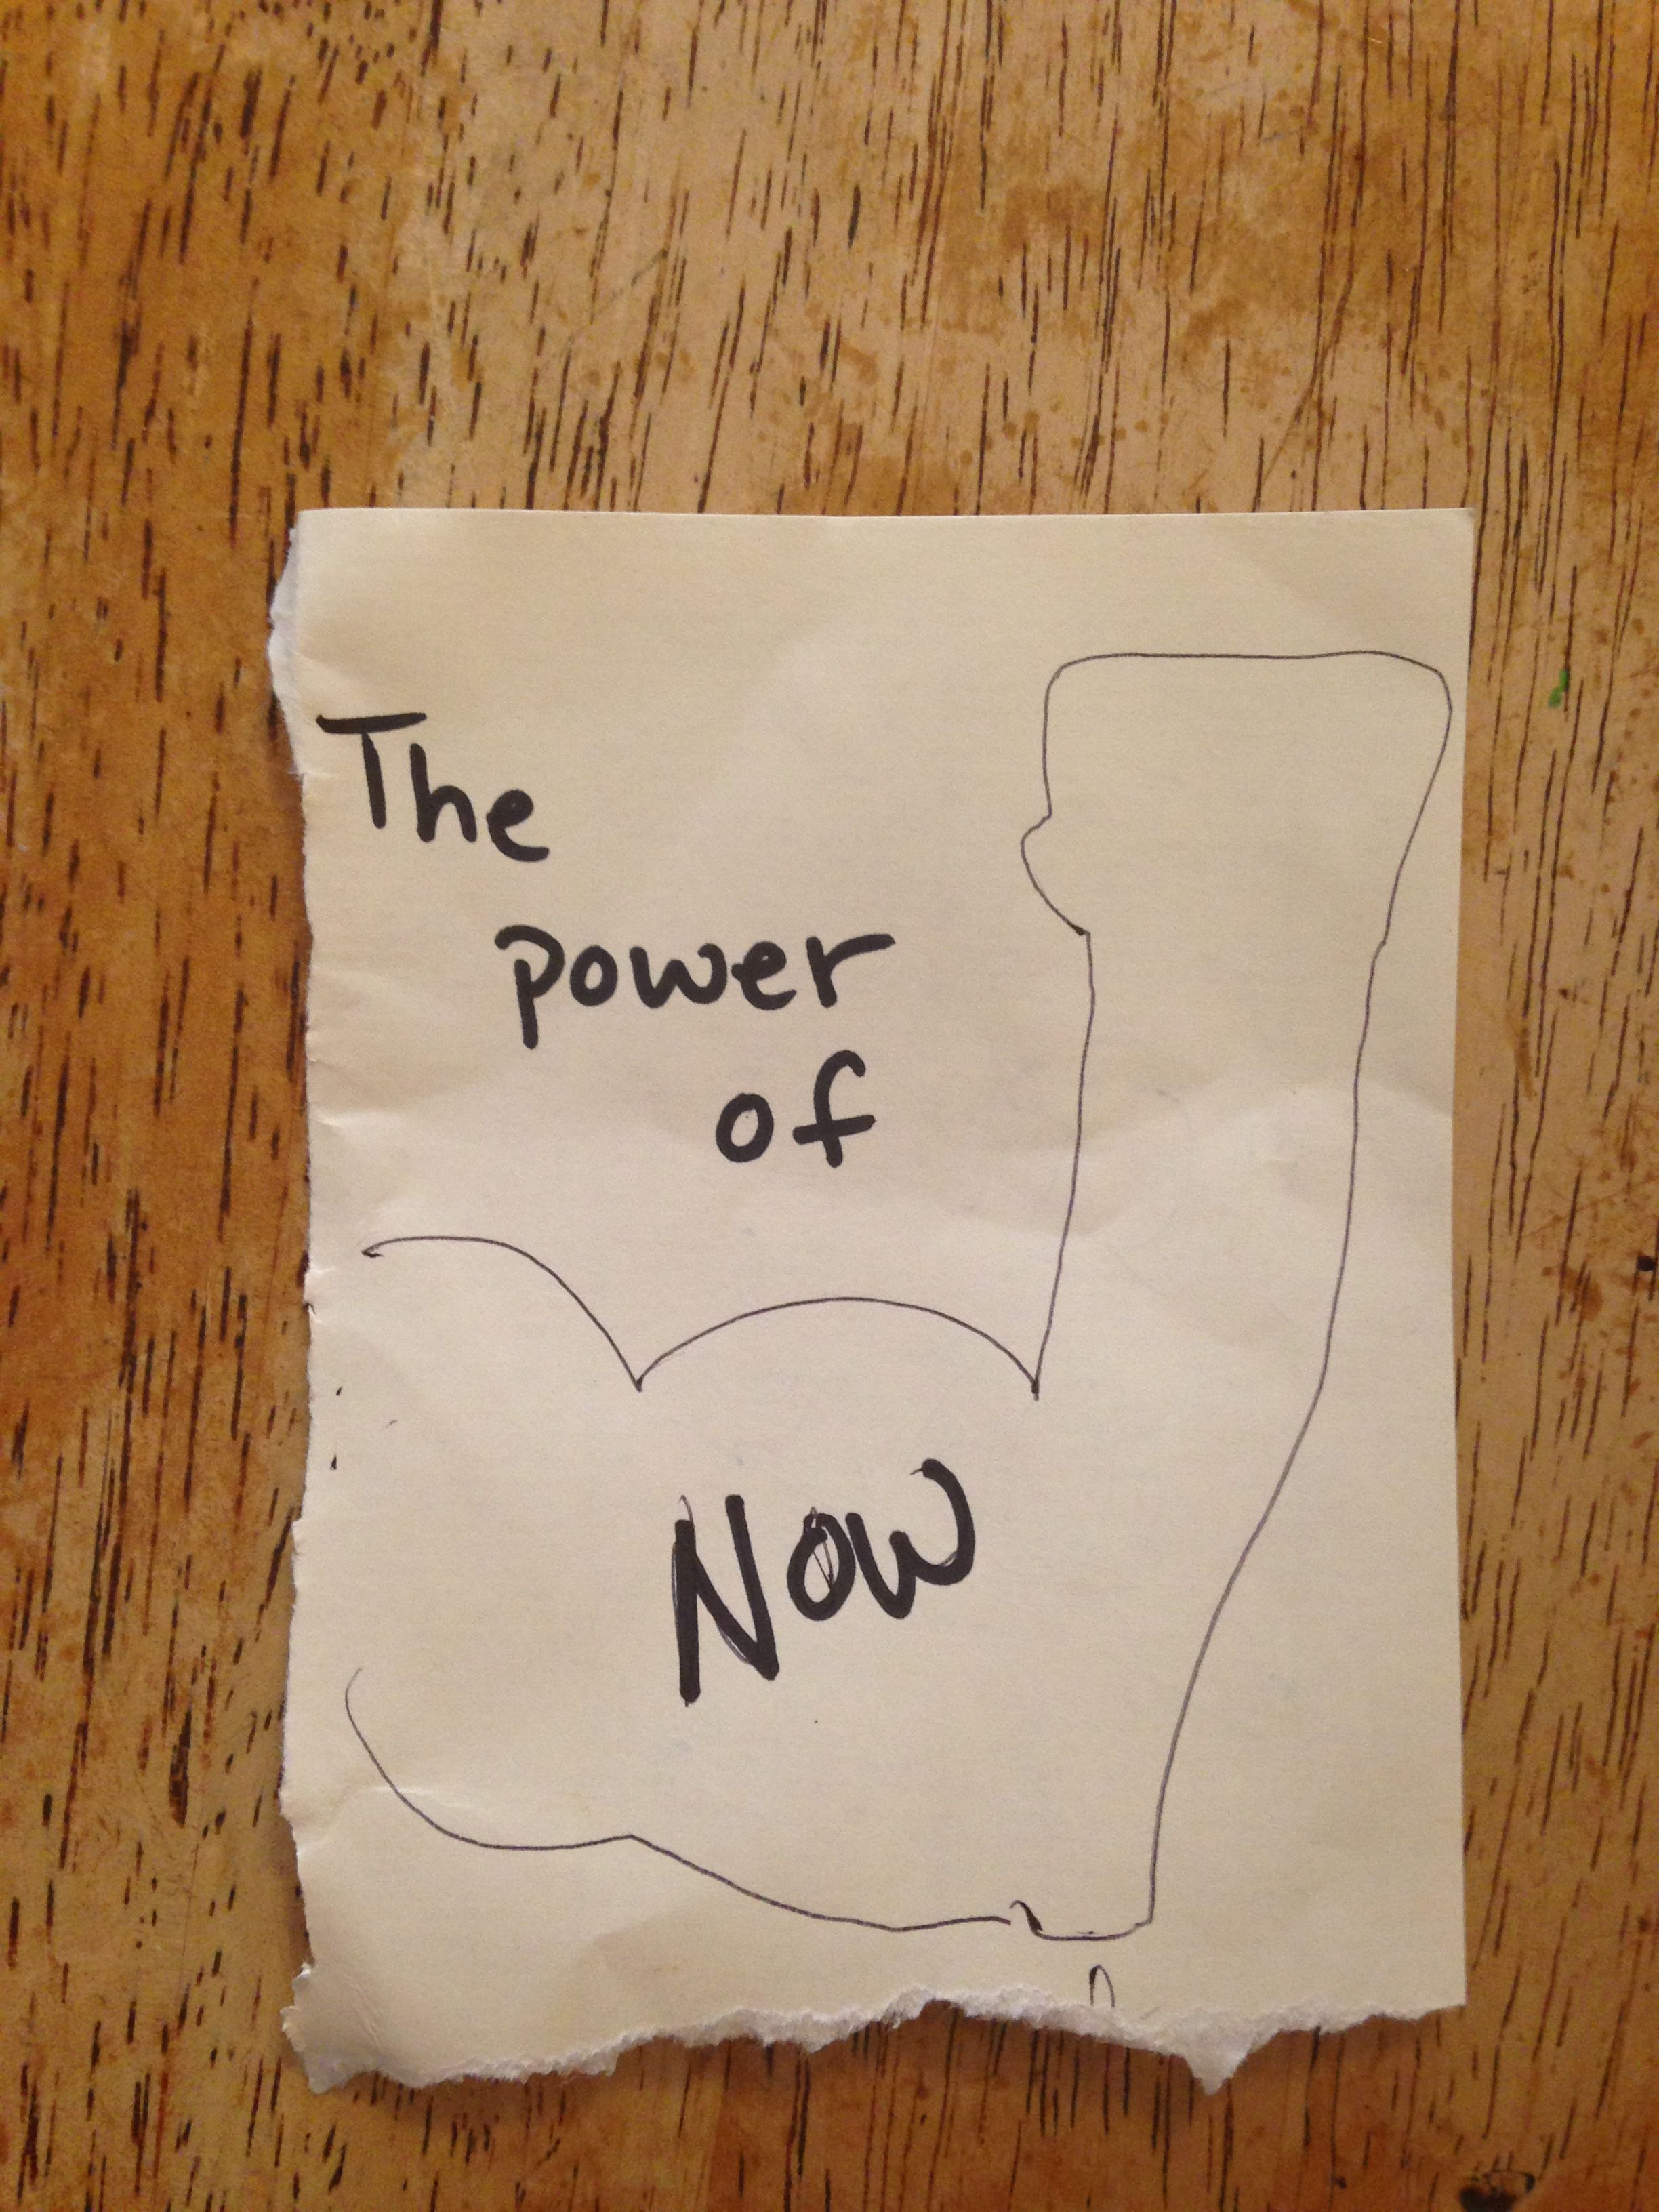 The power of now!